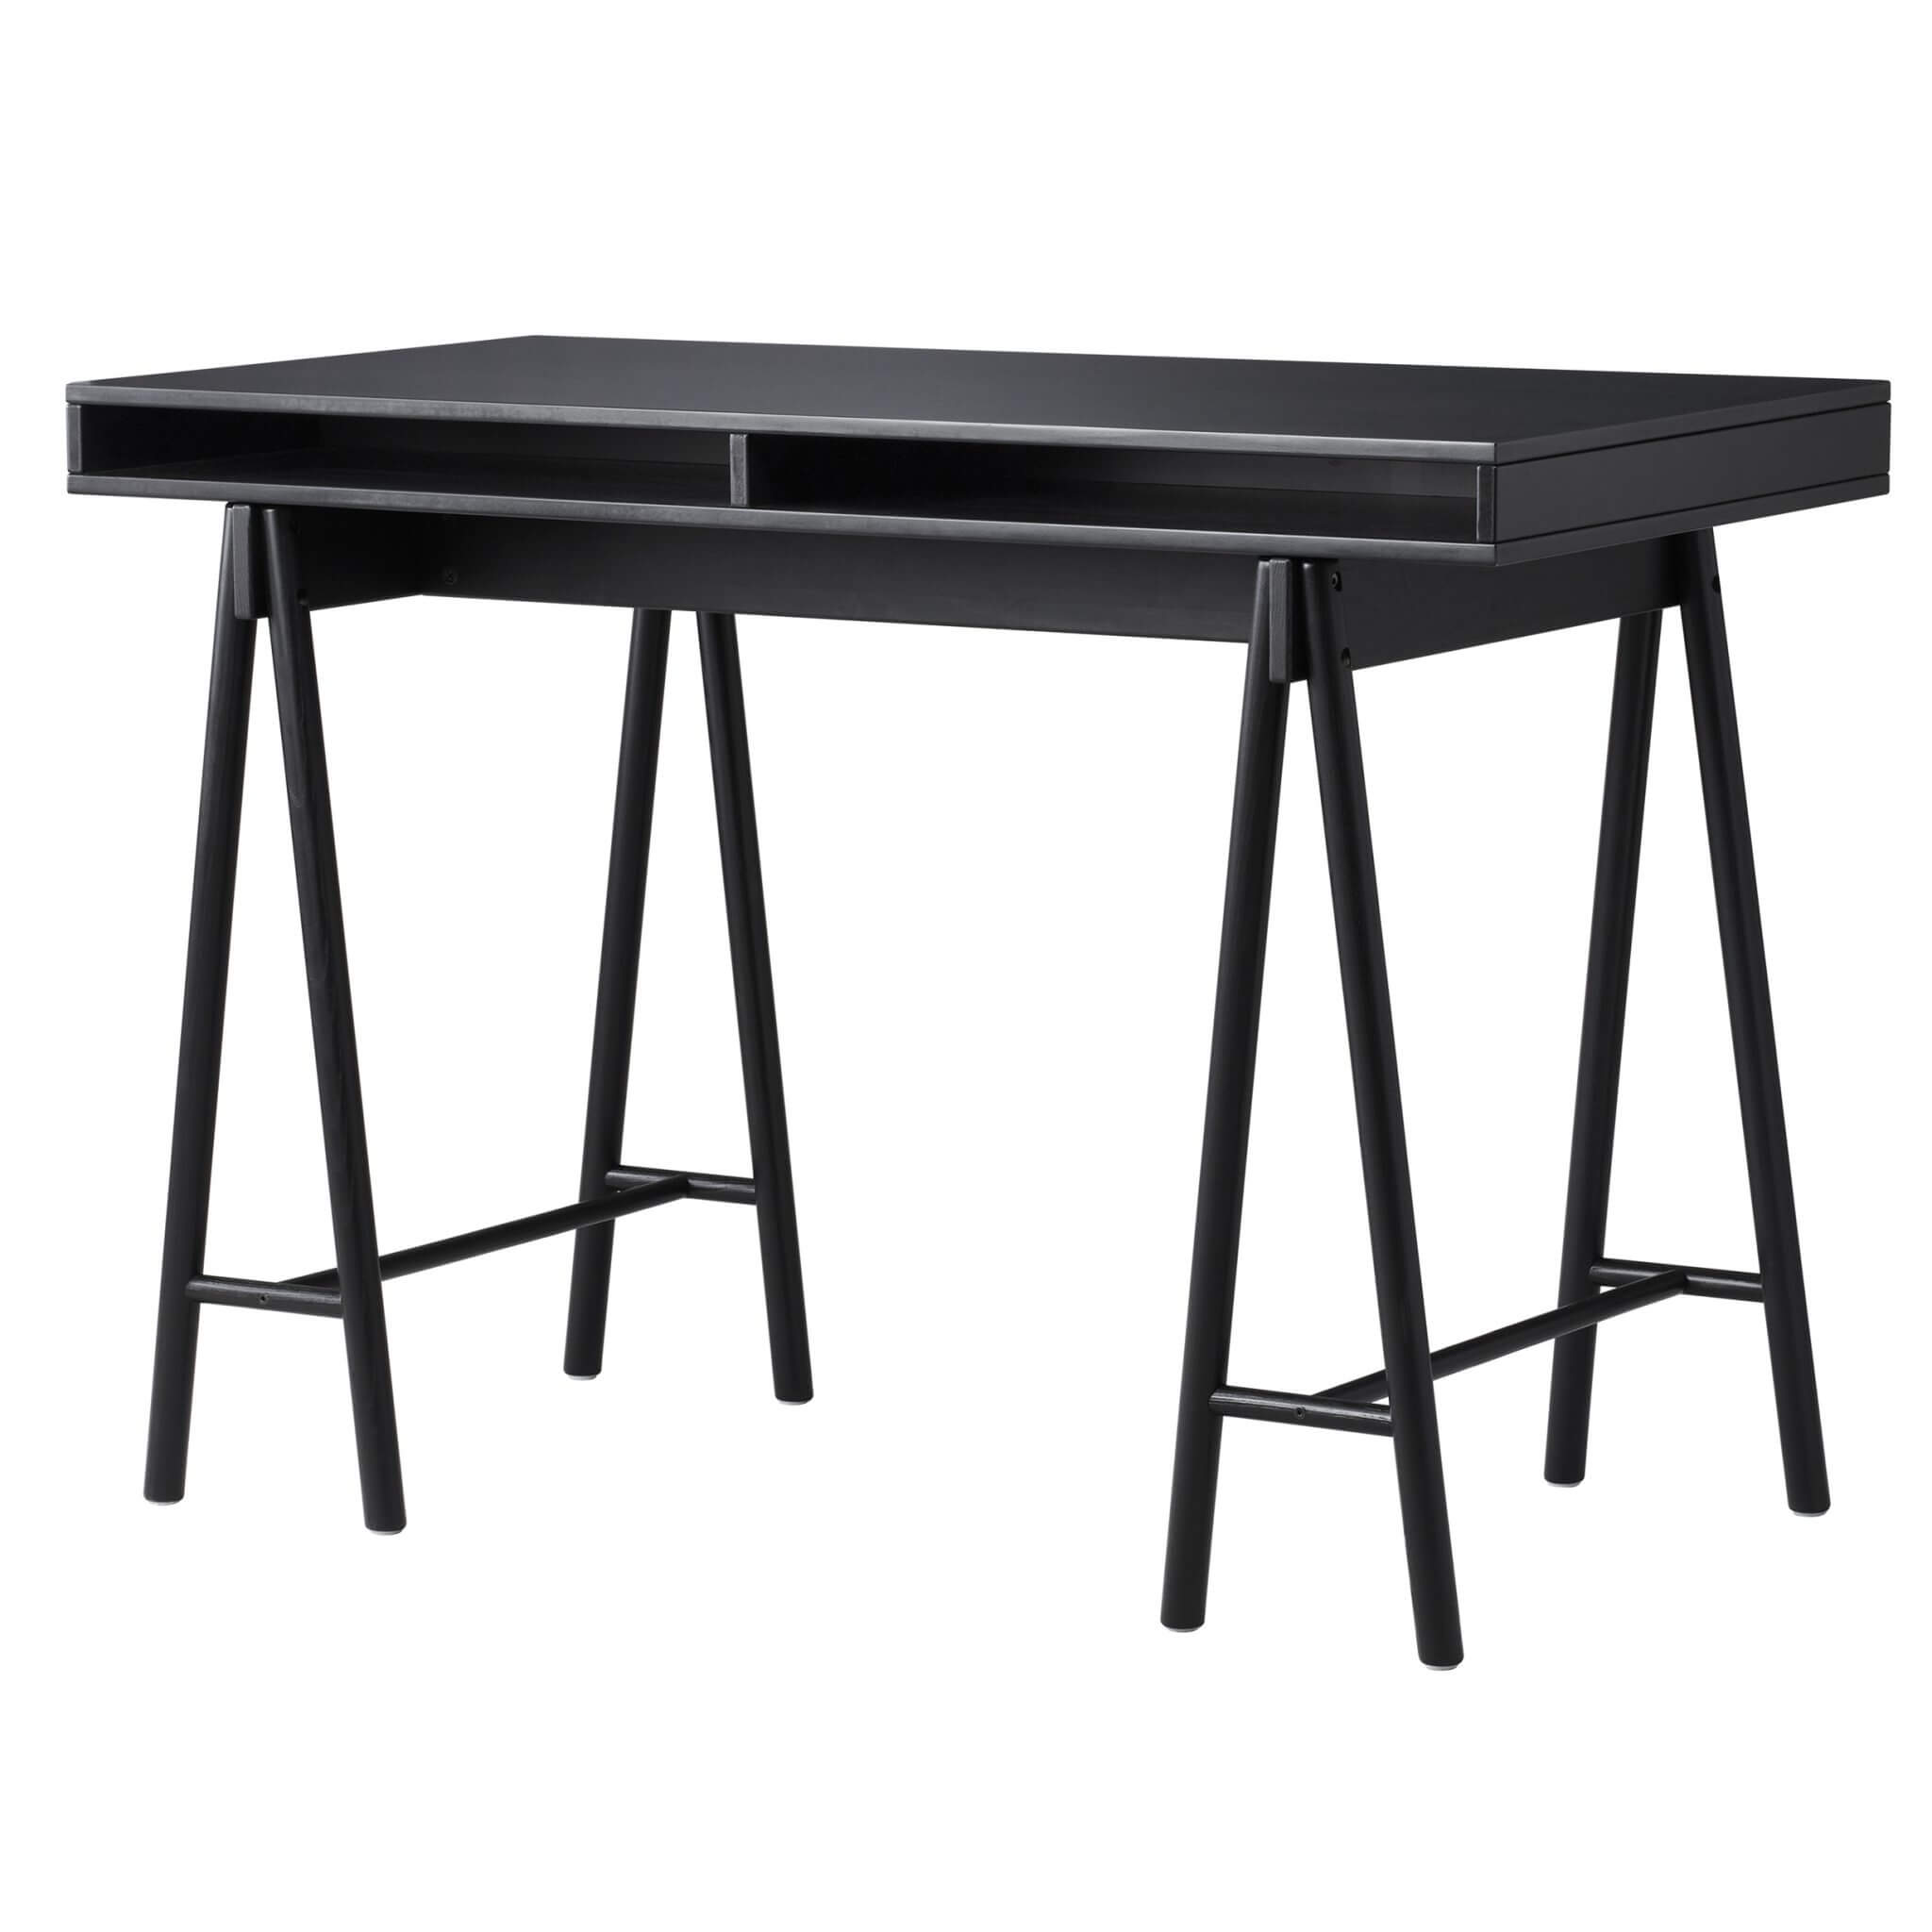 SPANST table top with trestles - $399 - IKEA